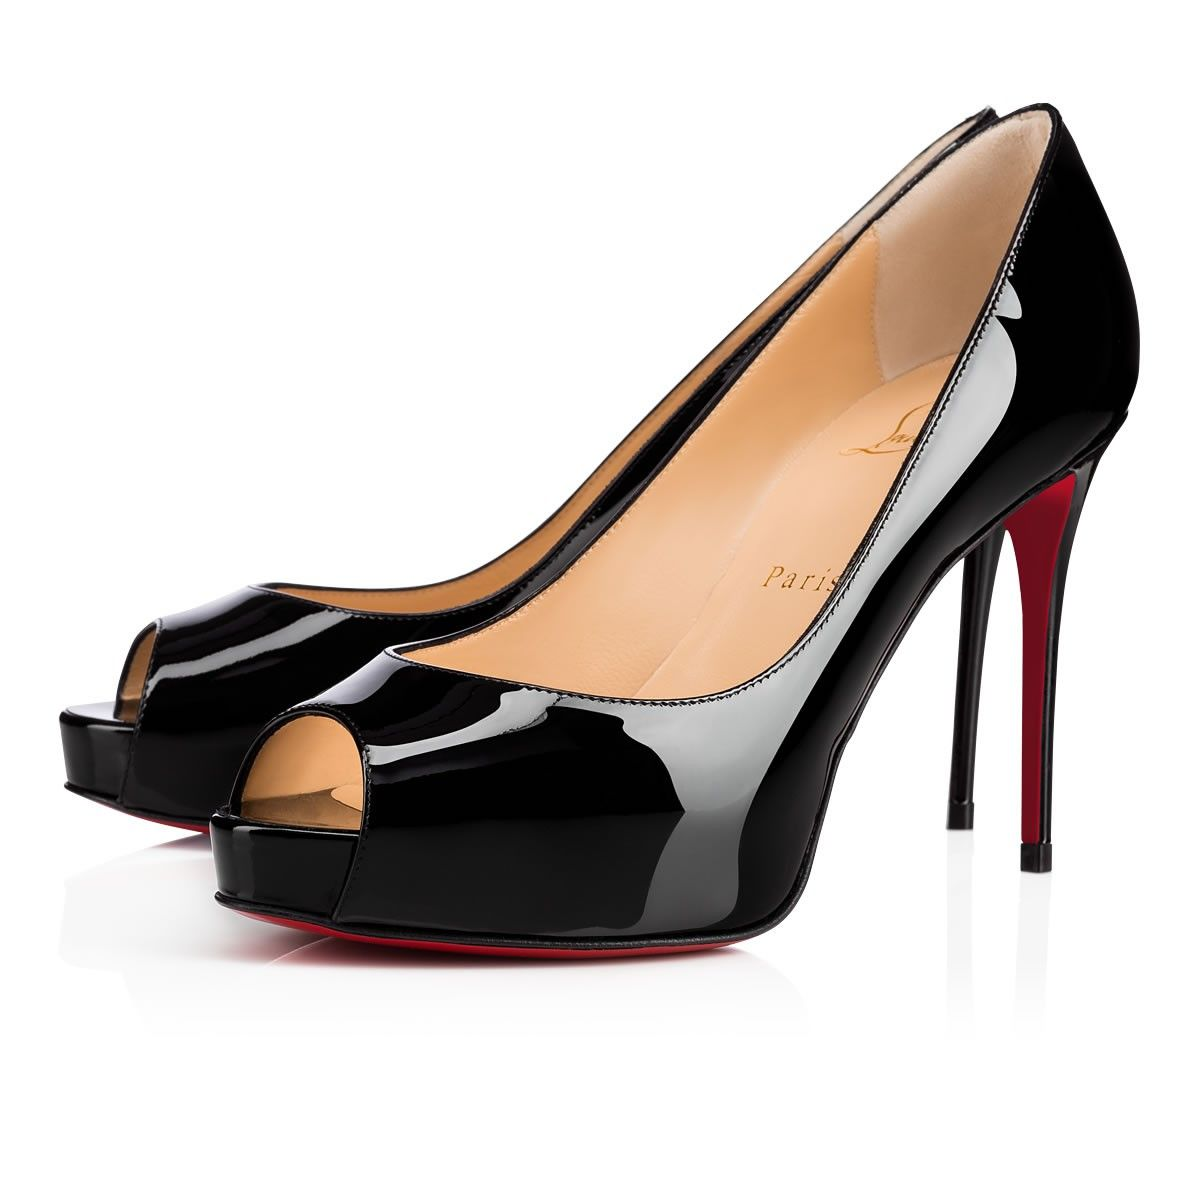 d3926e73237 Christian Louboutin New Very Prive | Lets play dress up | Shoes ...